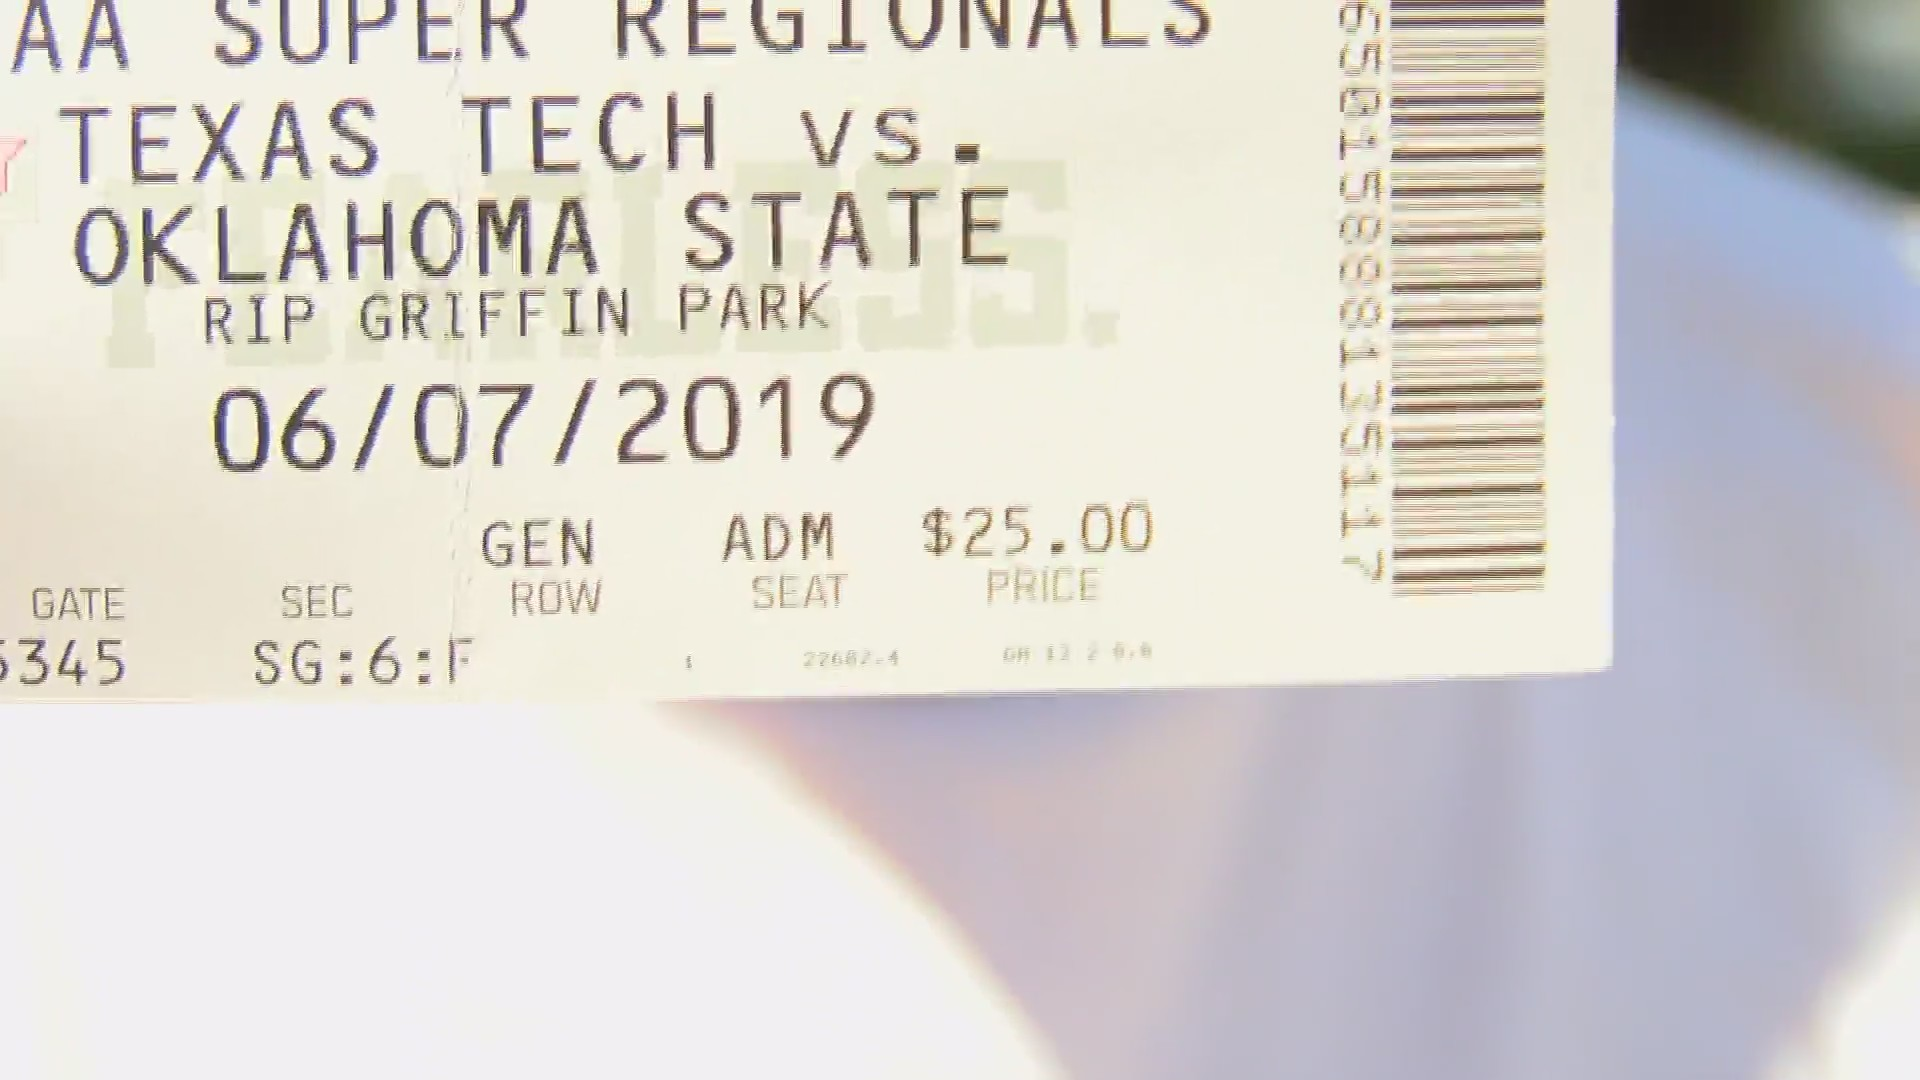 Texas Tech Athletics warns about ticket scalpers for Lubbock Super Regional